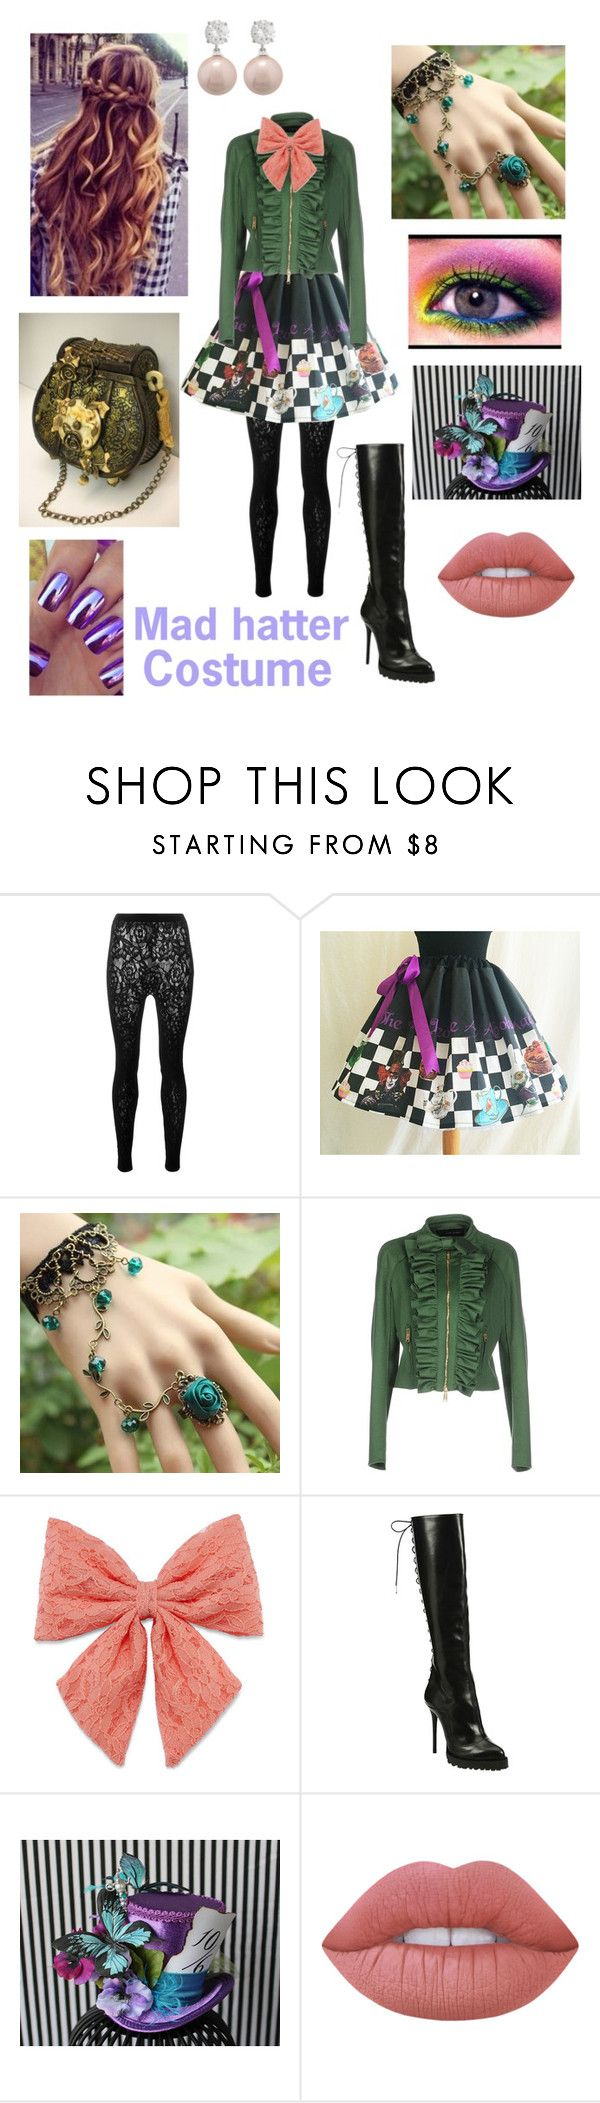 """Mad hatter costume"" by madycakes323 ❤ liked on Polyvore featuring McQ by Alexander McQueen, Dsquared2, Decree, Alexander McQueen and Lime Crime"